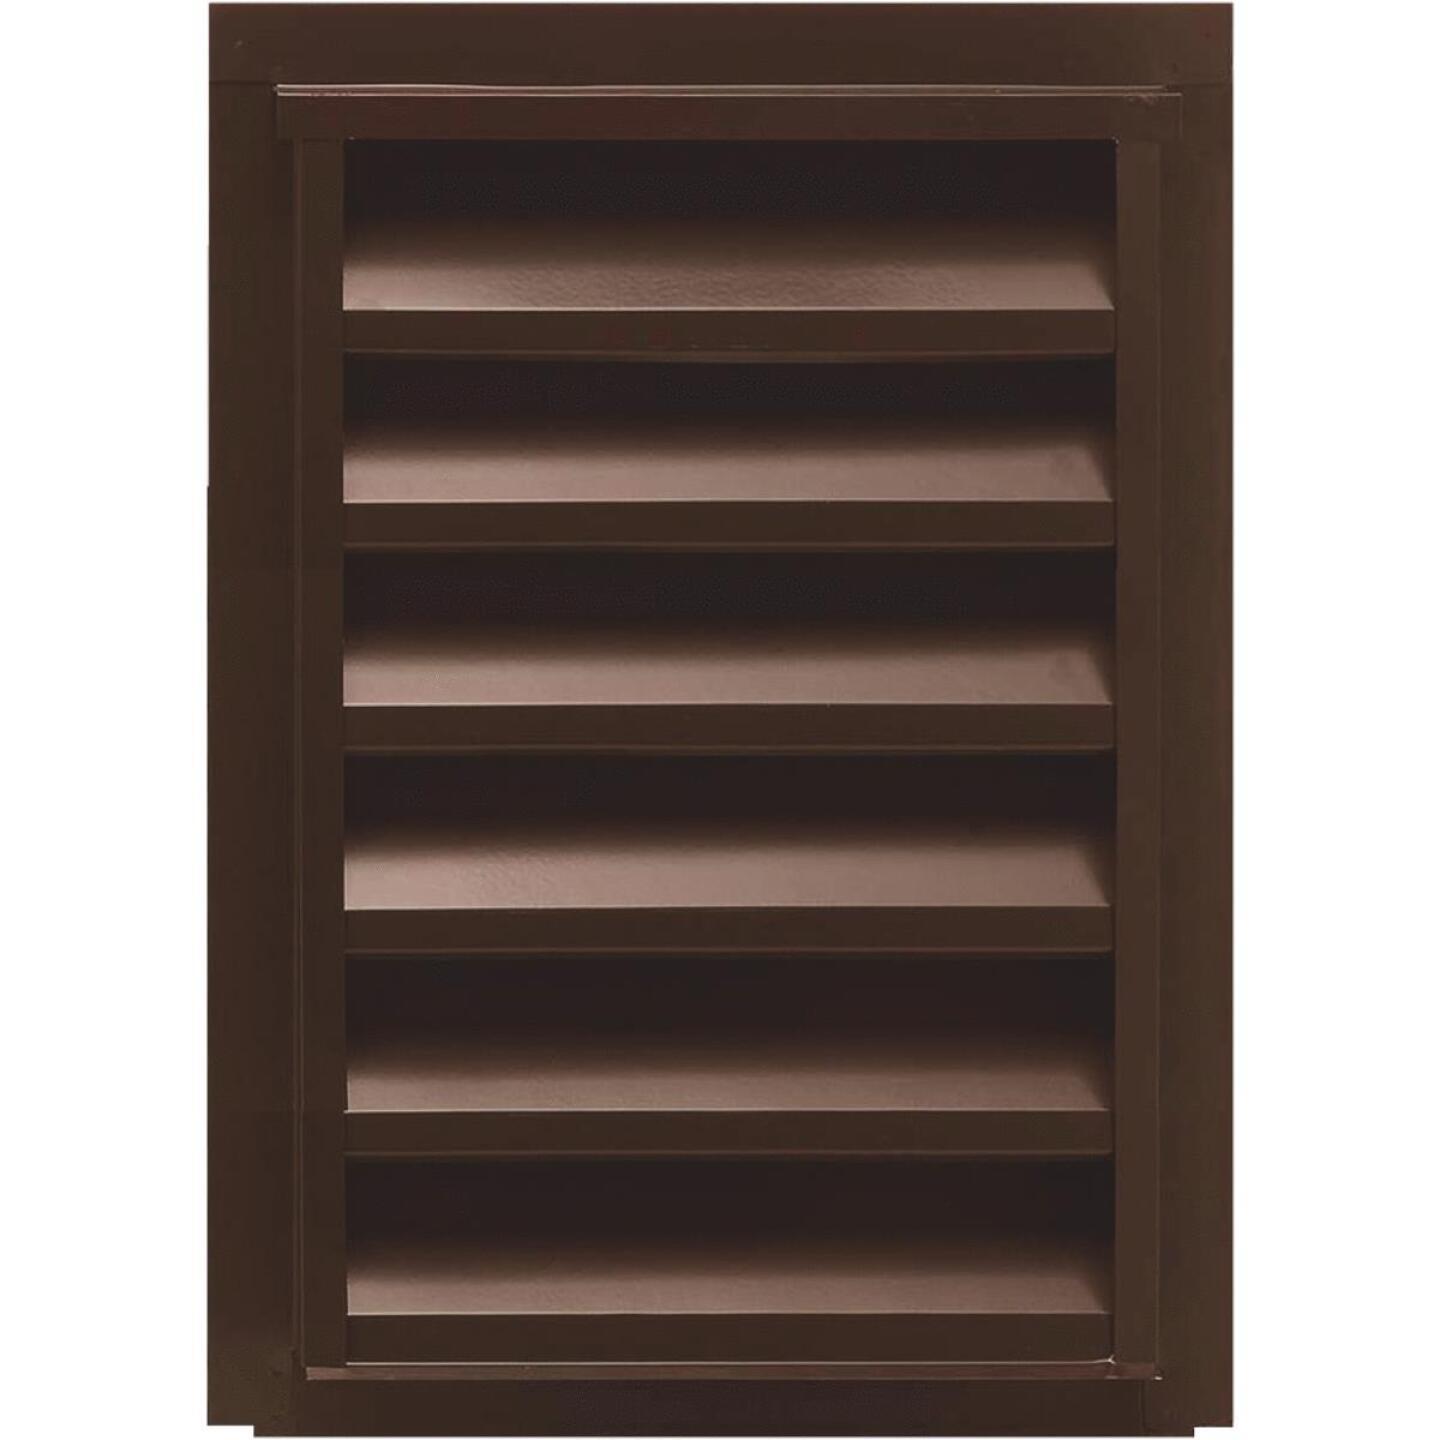 "NorWesco 12"" x 18"" Rectangular Brown Gable Attic Vent Image 1"